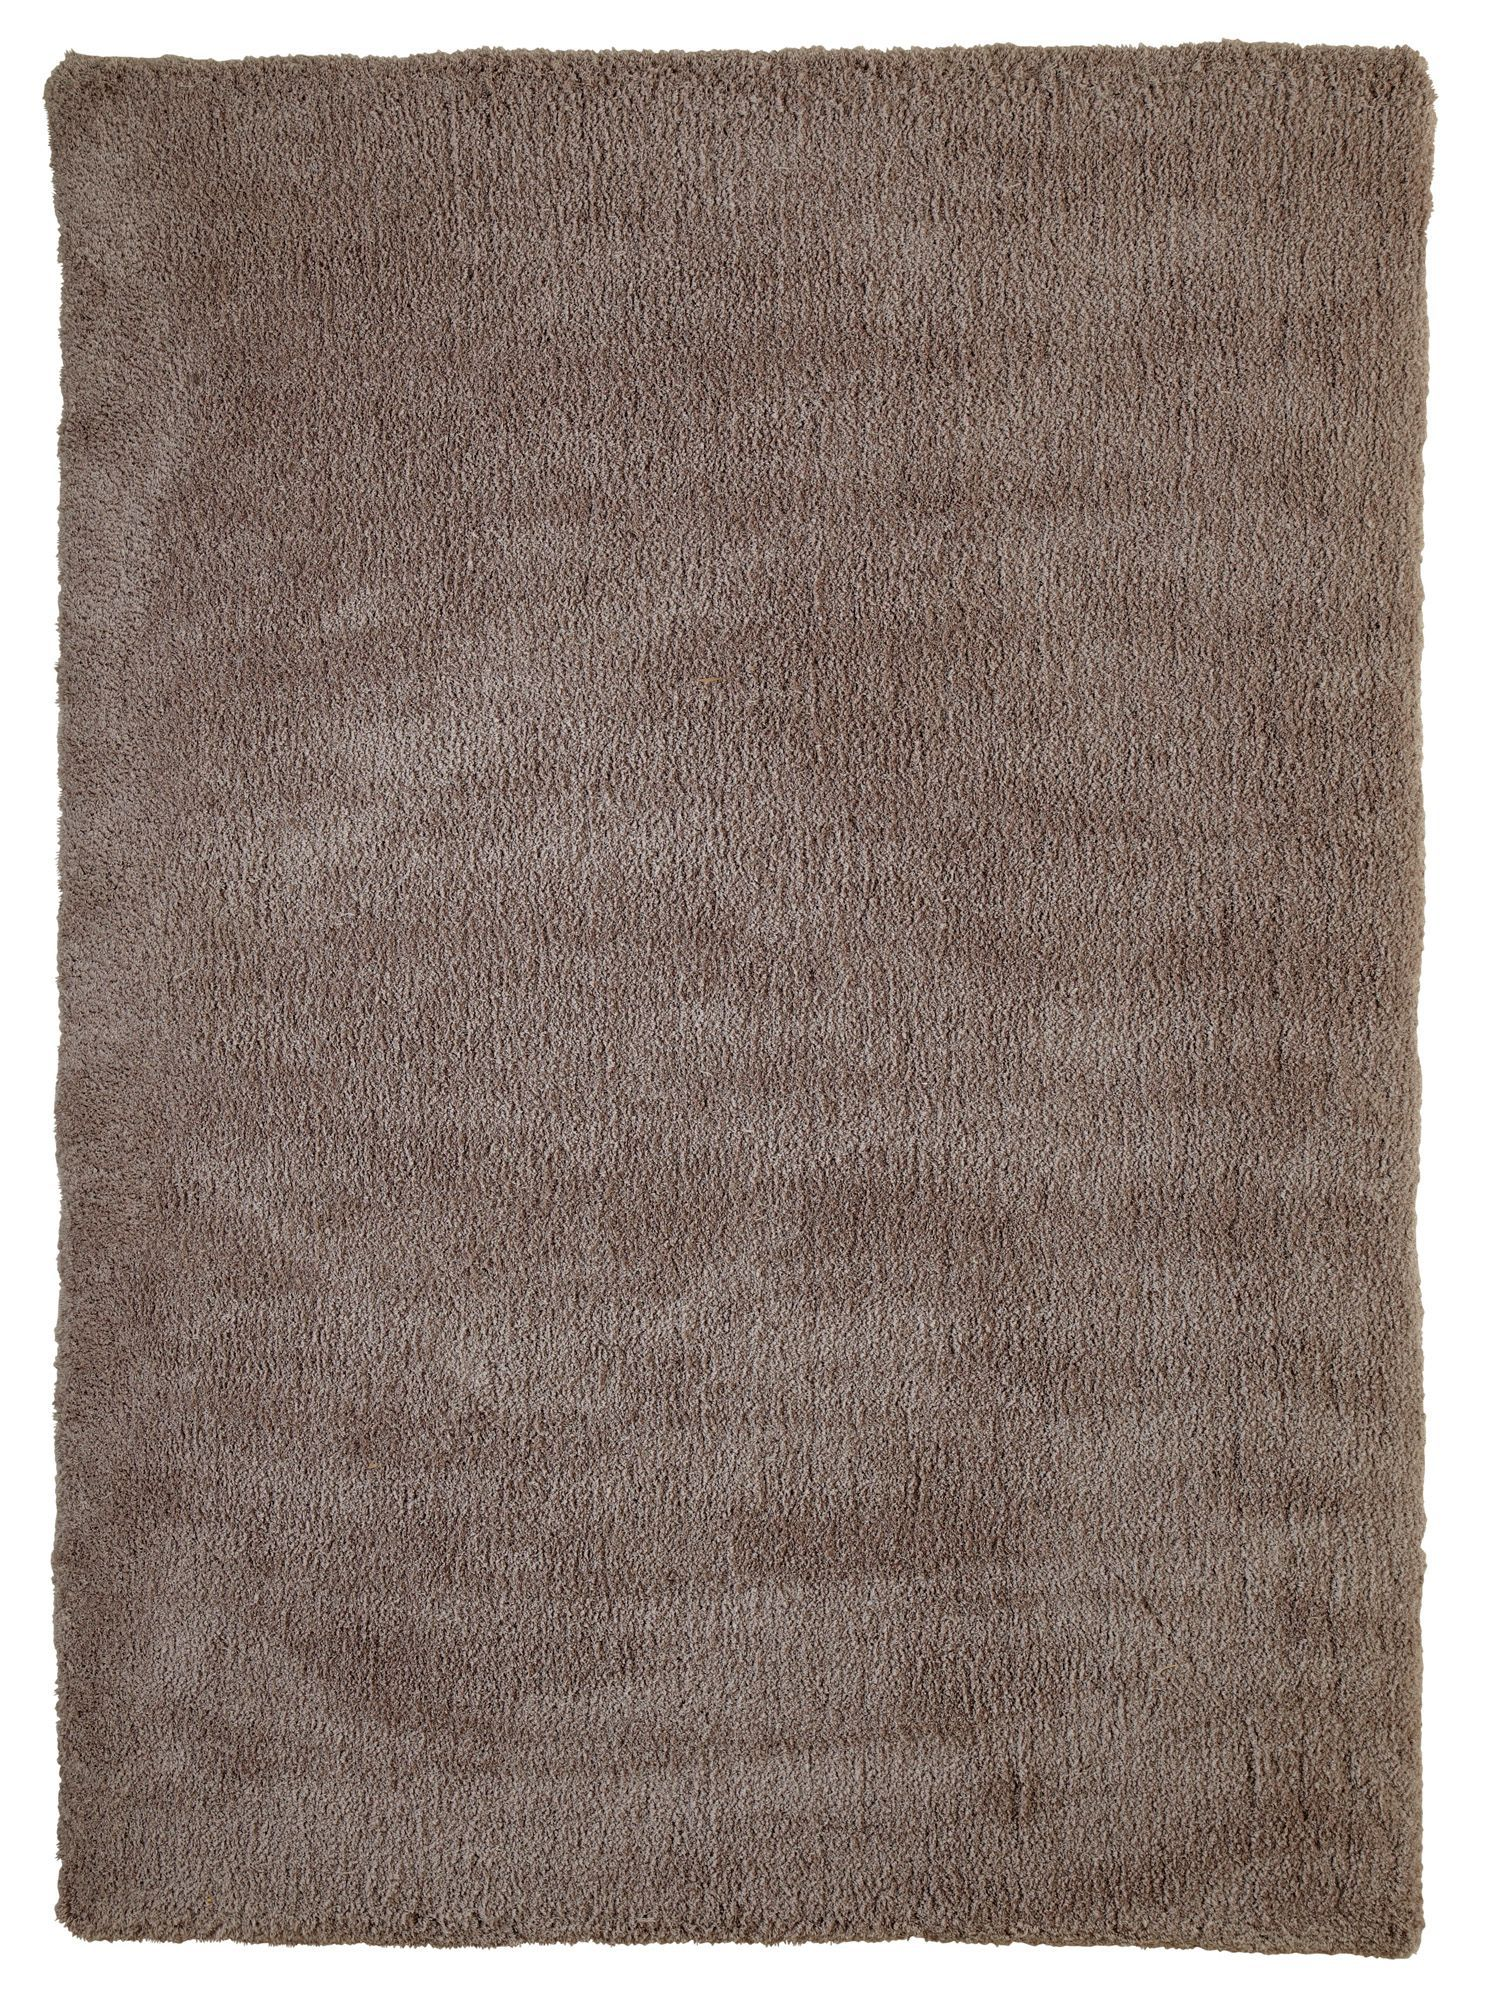 Colours Oriana Mink Rug L17m W12m Departments